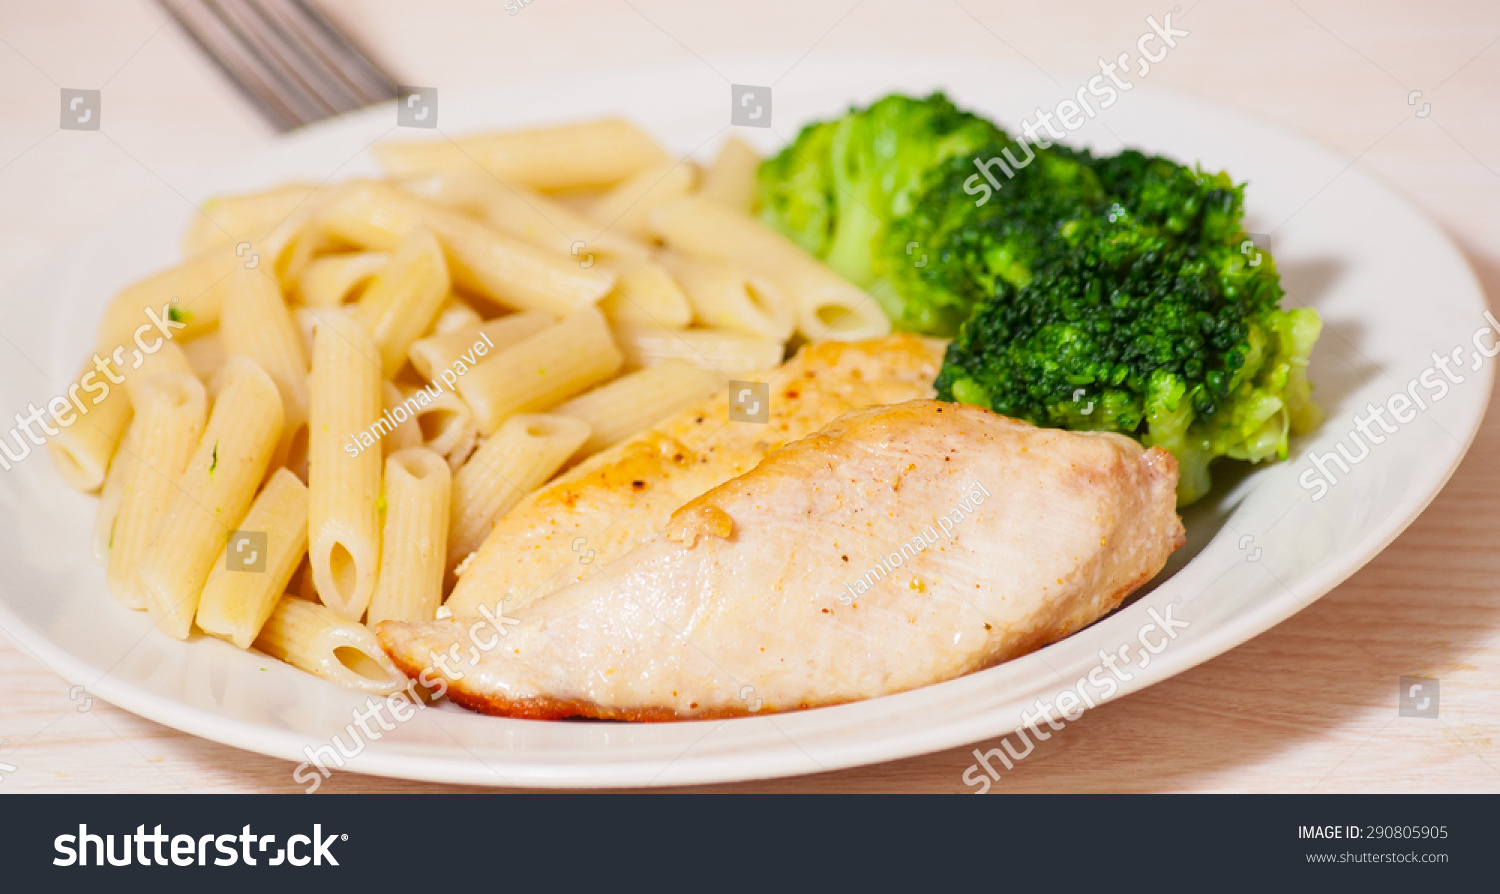 How To Make Chicken Fillet Pasta